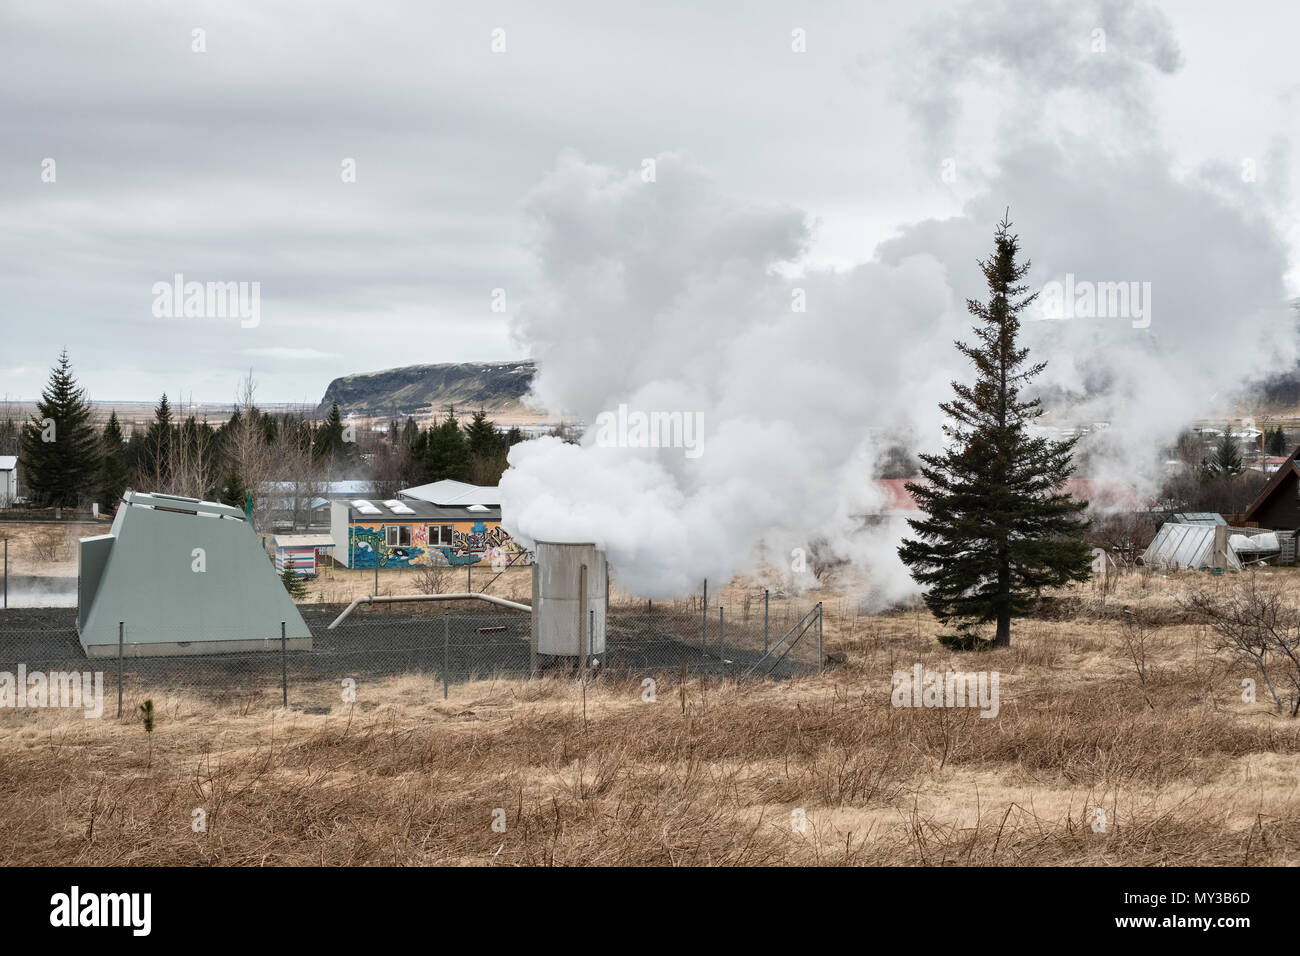 Geothermal power plant, Hveragerði, south Iceland. This is a highly active geothermal zone and has many naturally heated greenhouses and hot springs - Stock Image